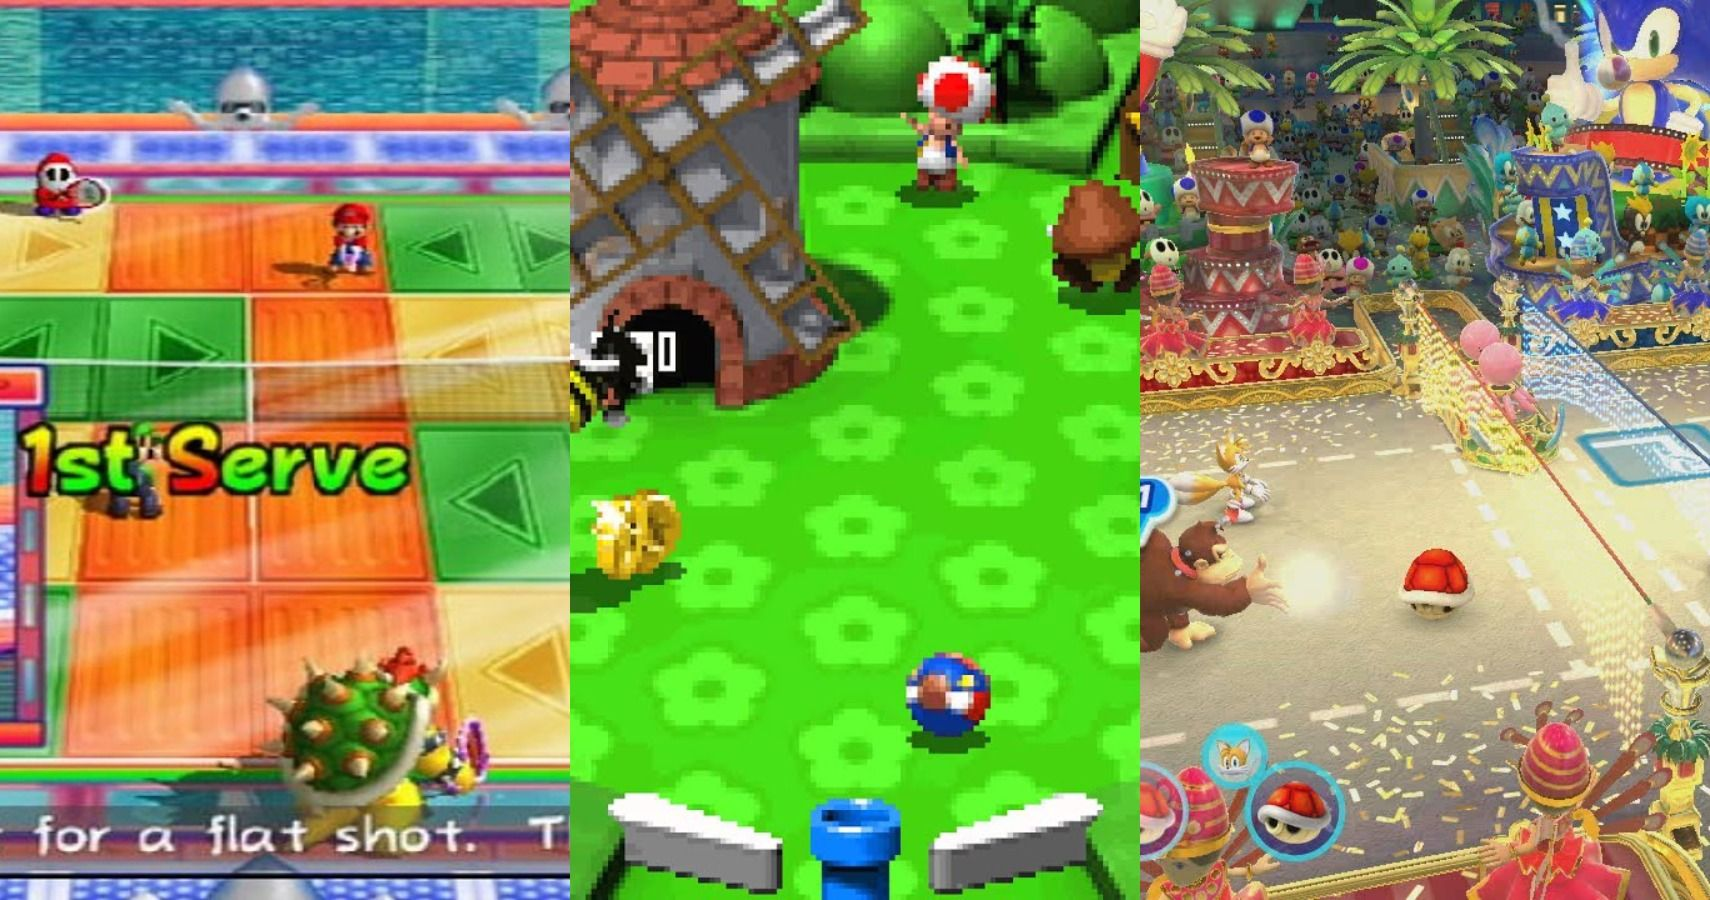 The 15 Worst Mario Games Of All Time (According To Metacritic)